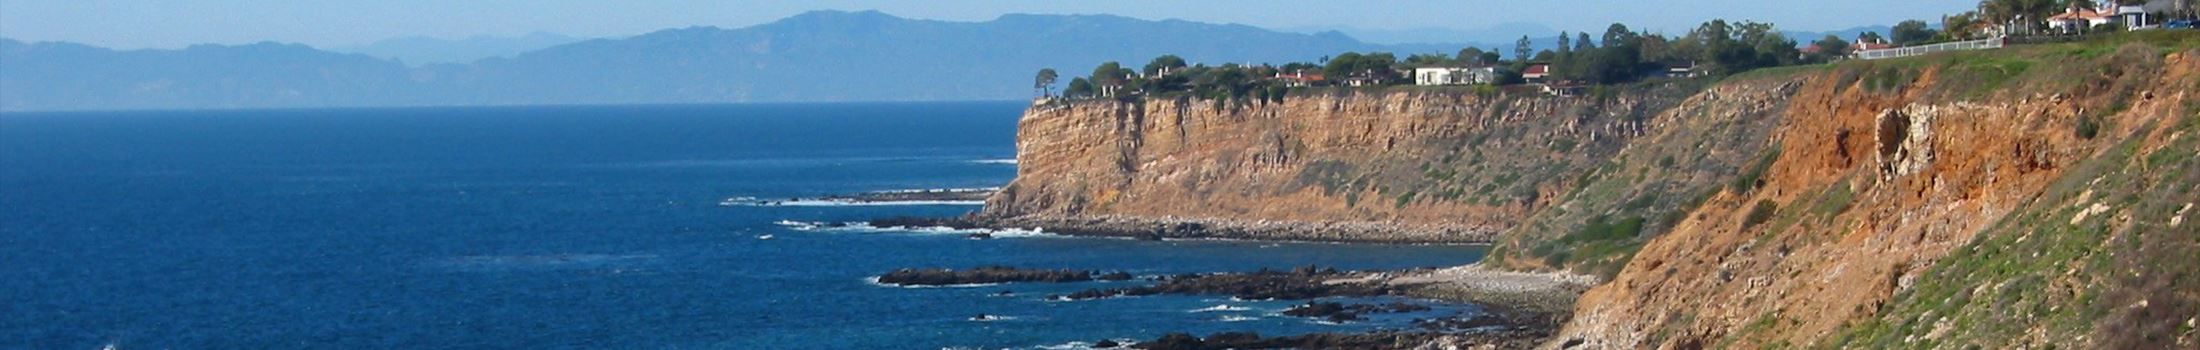 Recreation, Parks, and Open Space | Rancho Palos Verdes, CA